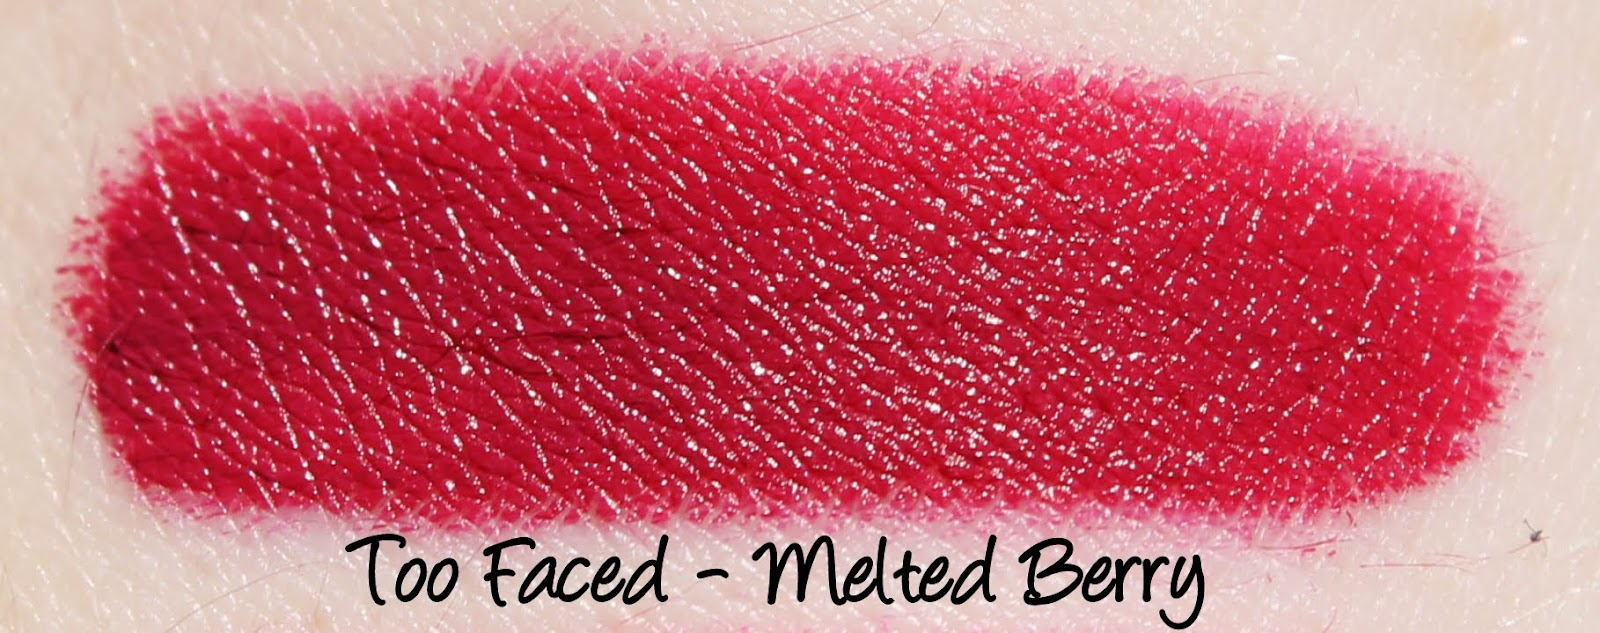 Too Faced Melted Berry Swatches & Review